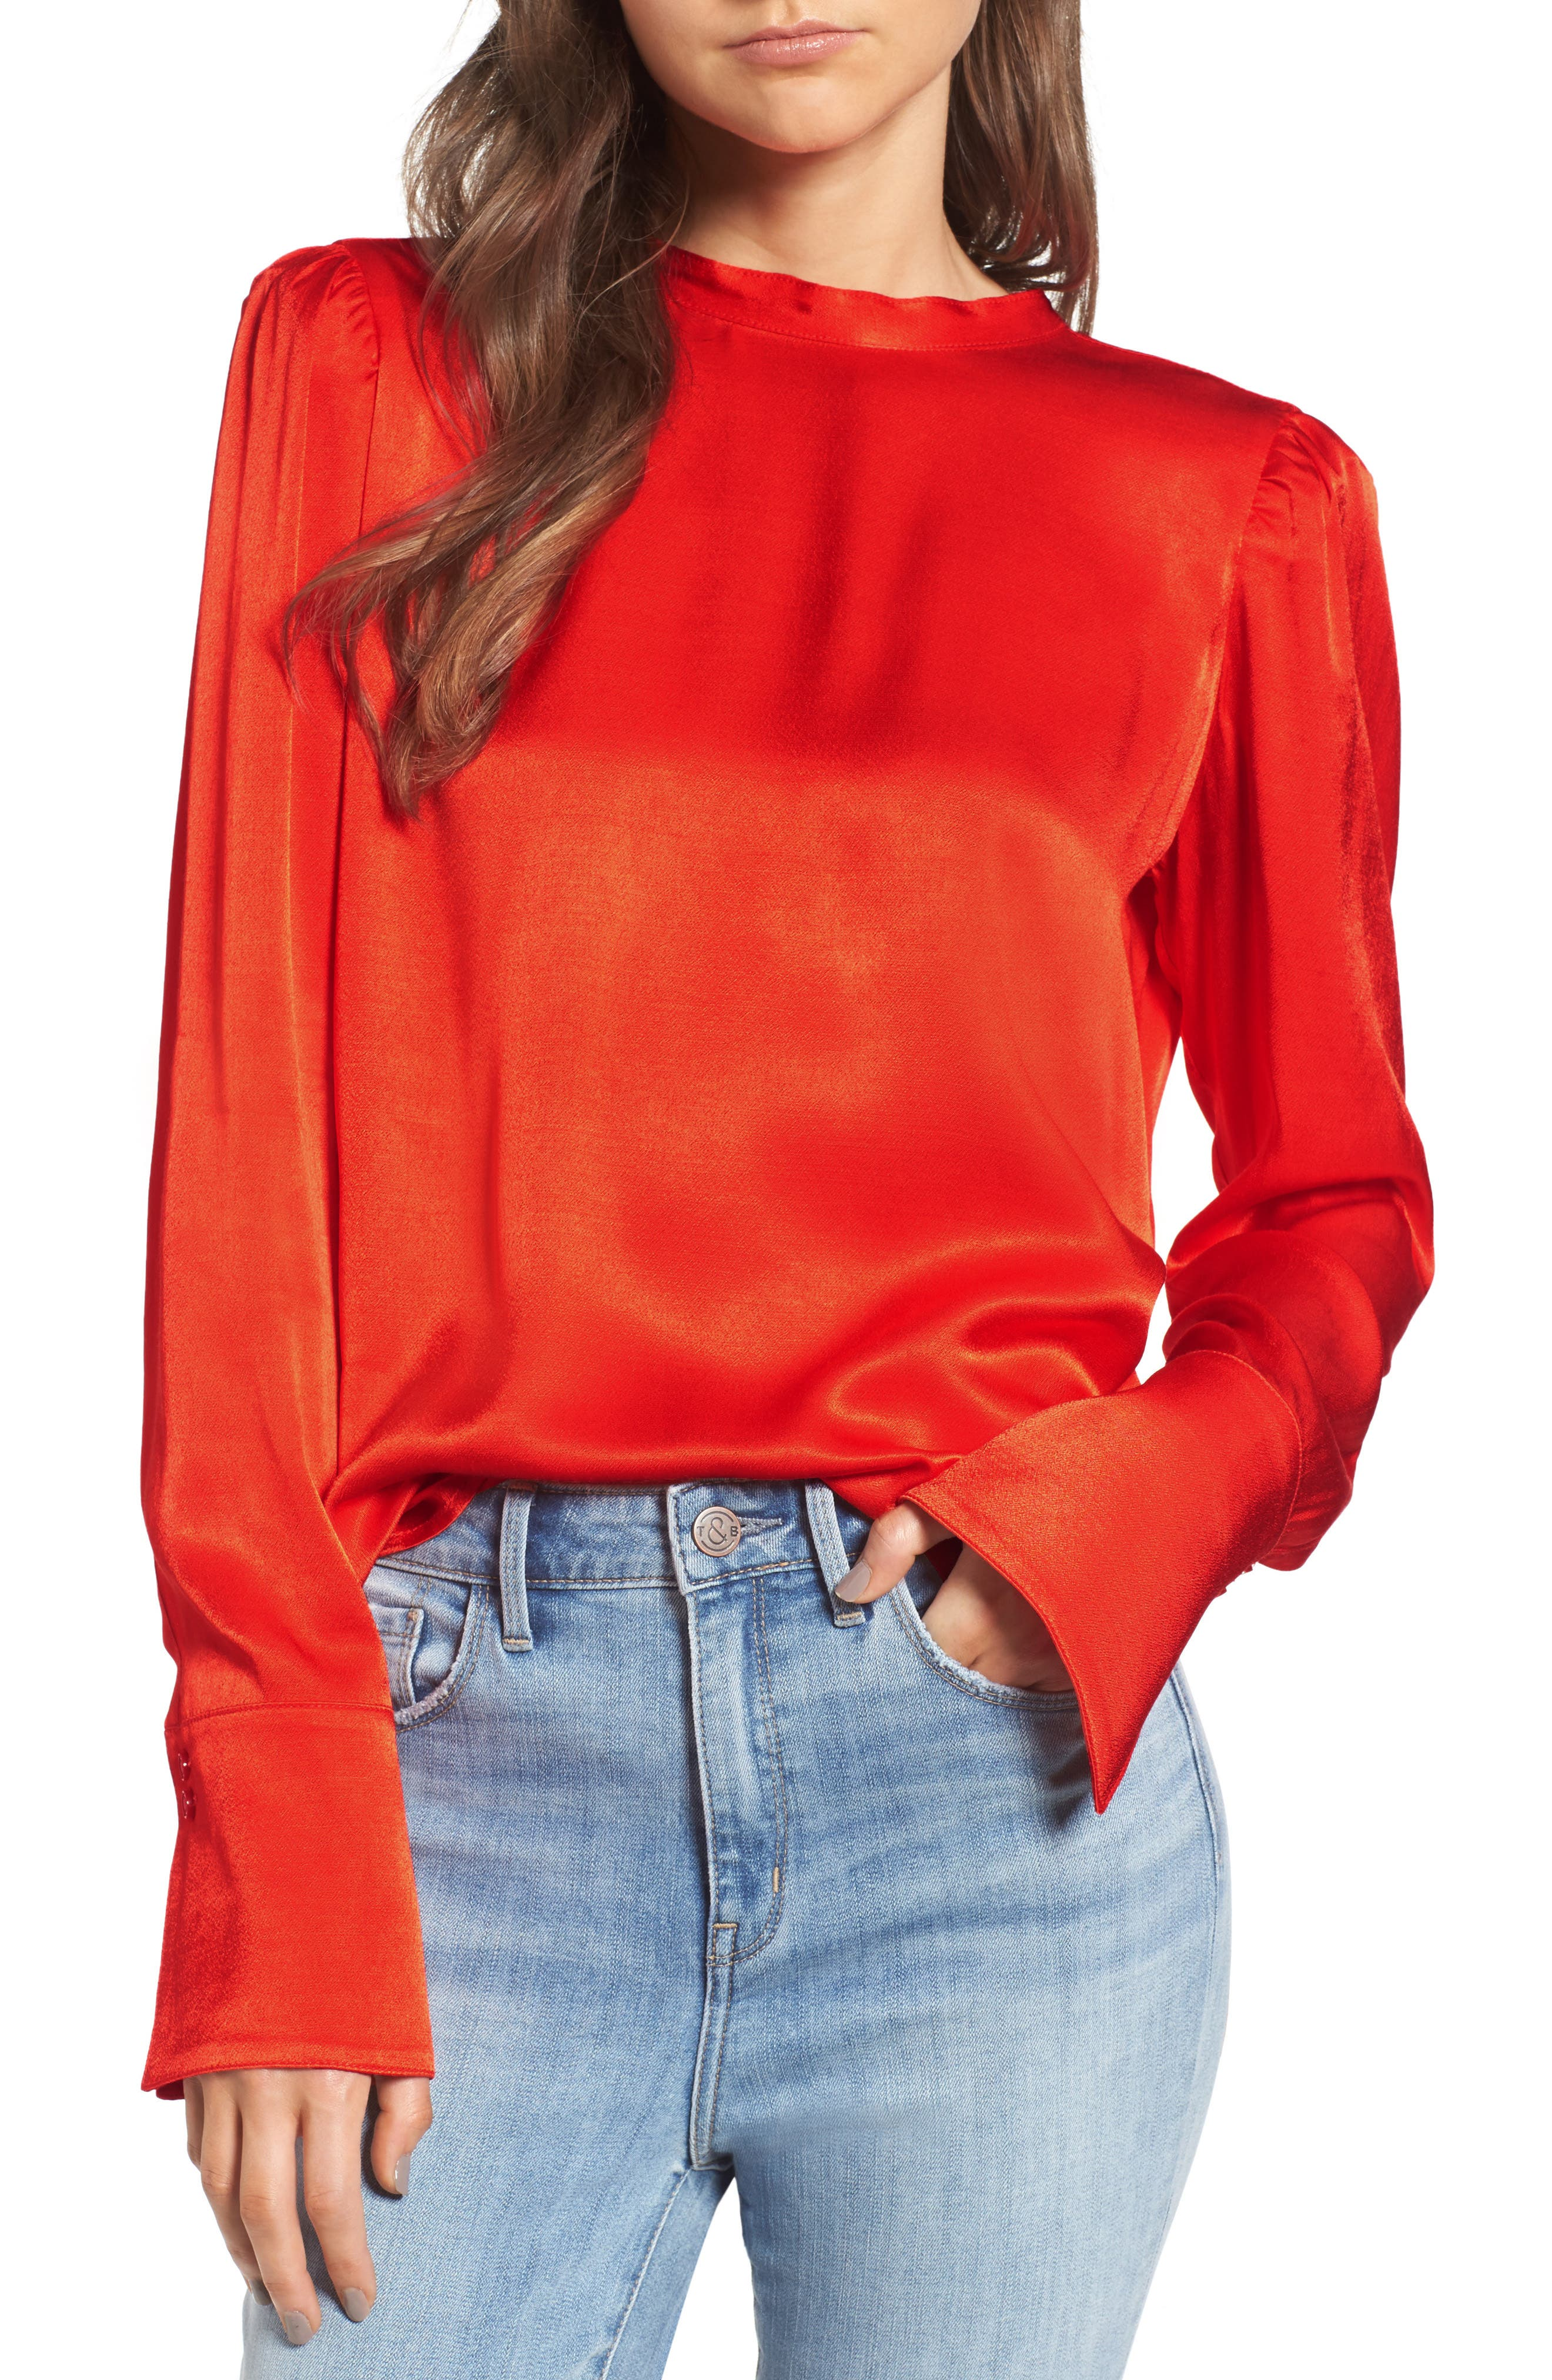 x Something Navy Satin Tunic,                         Main,                         color, Red Fiery